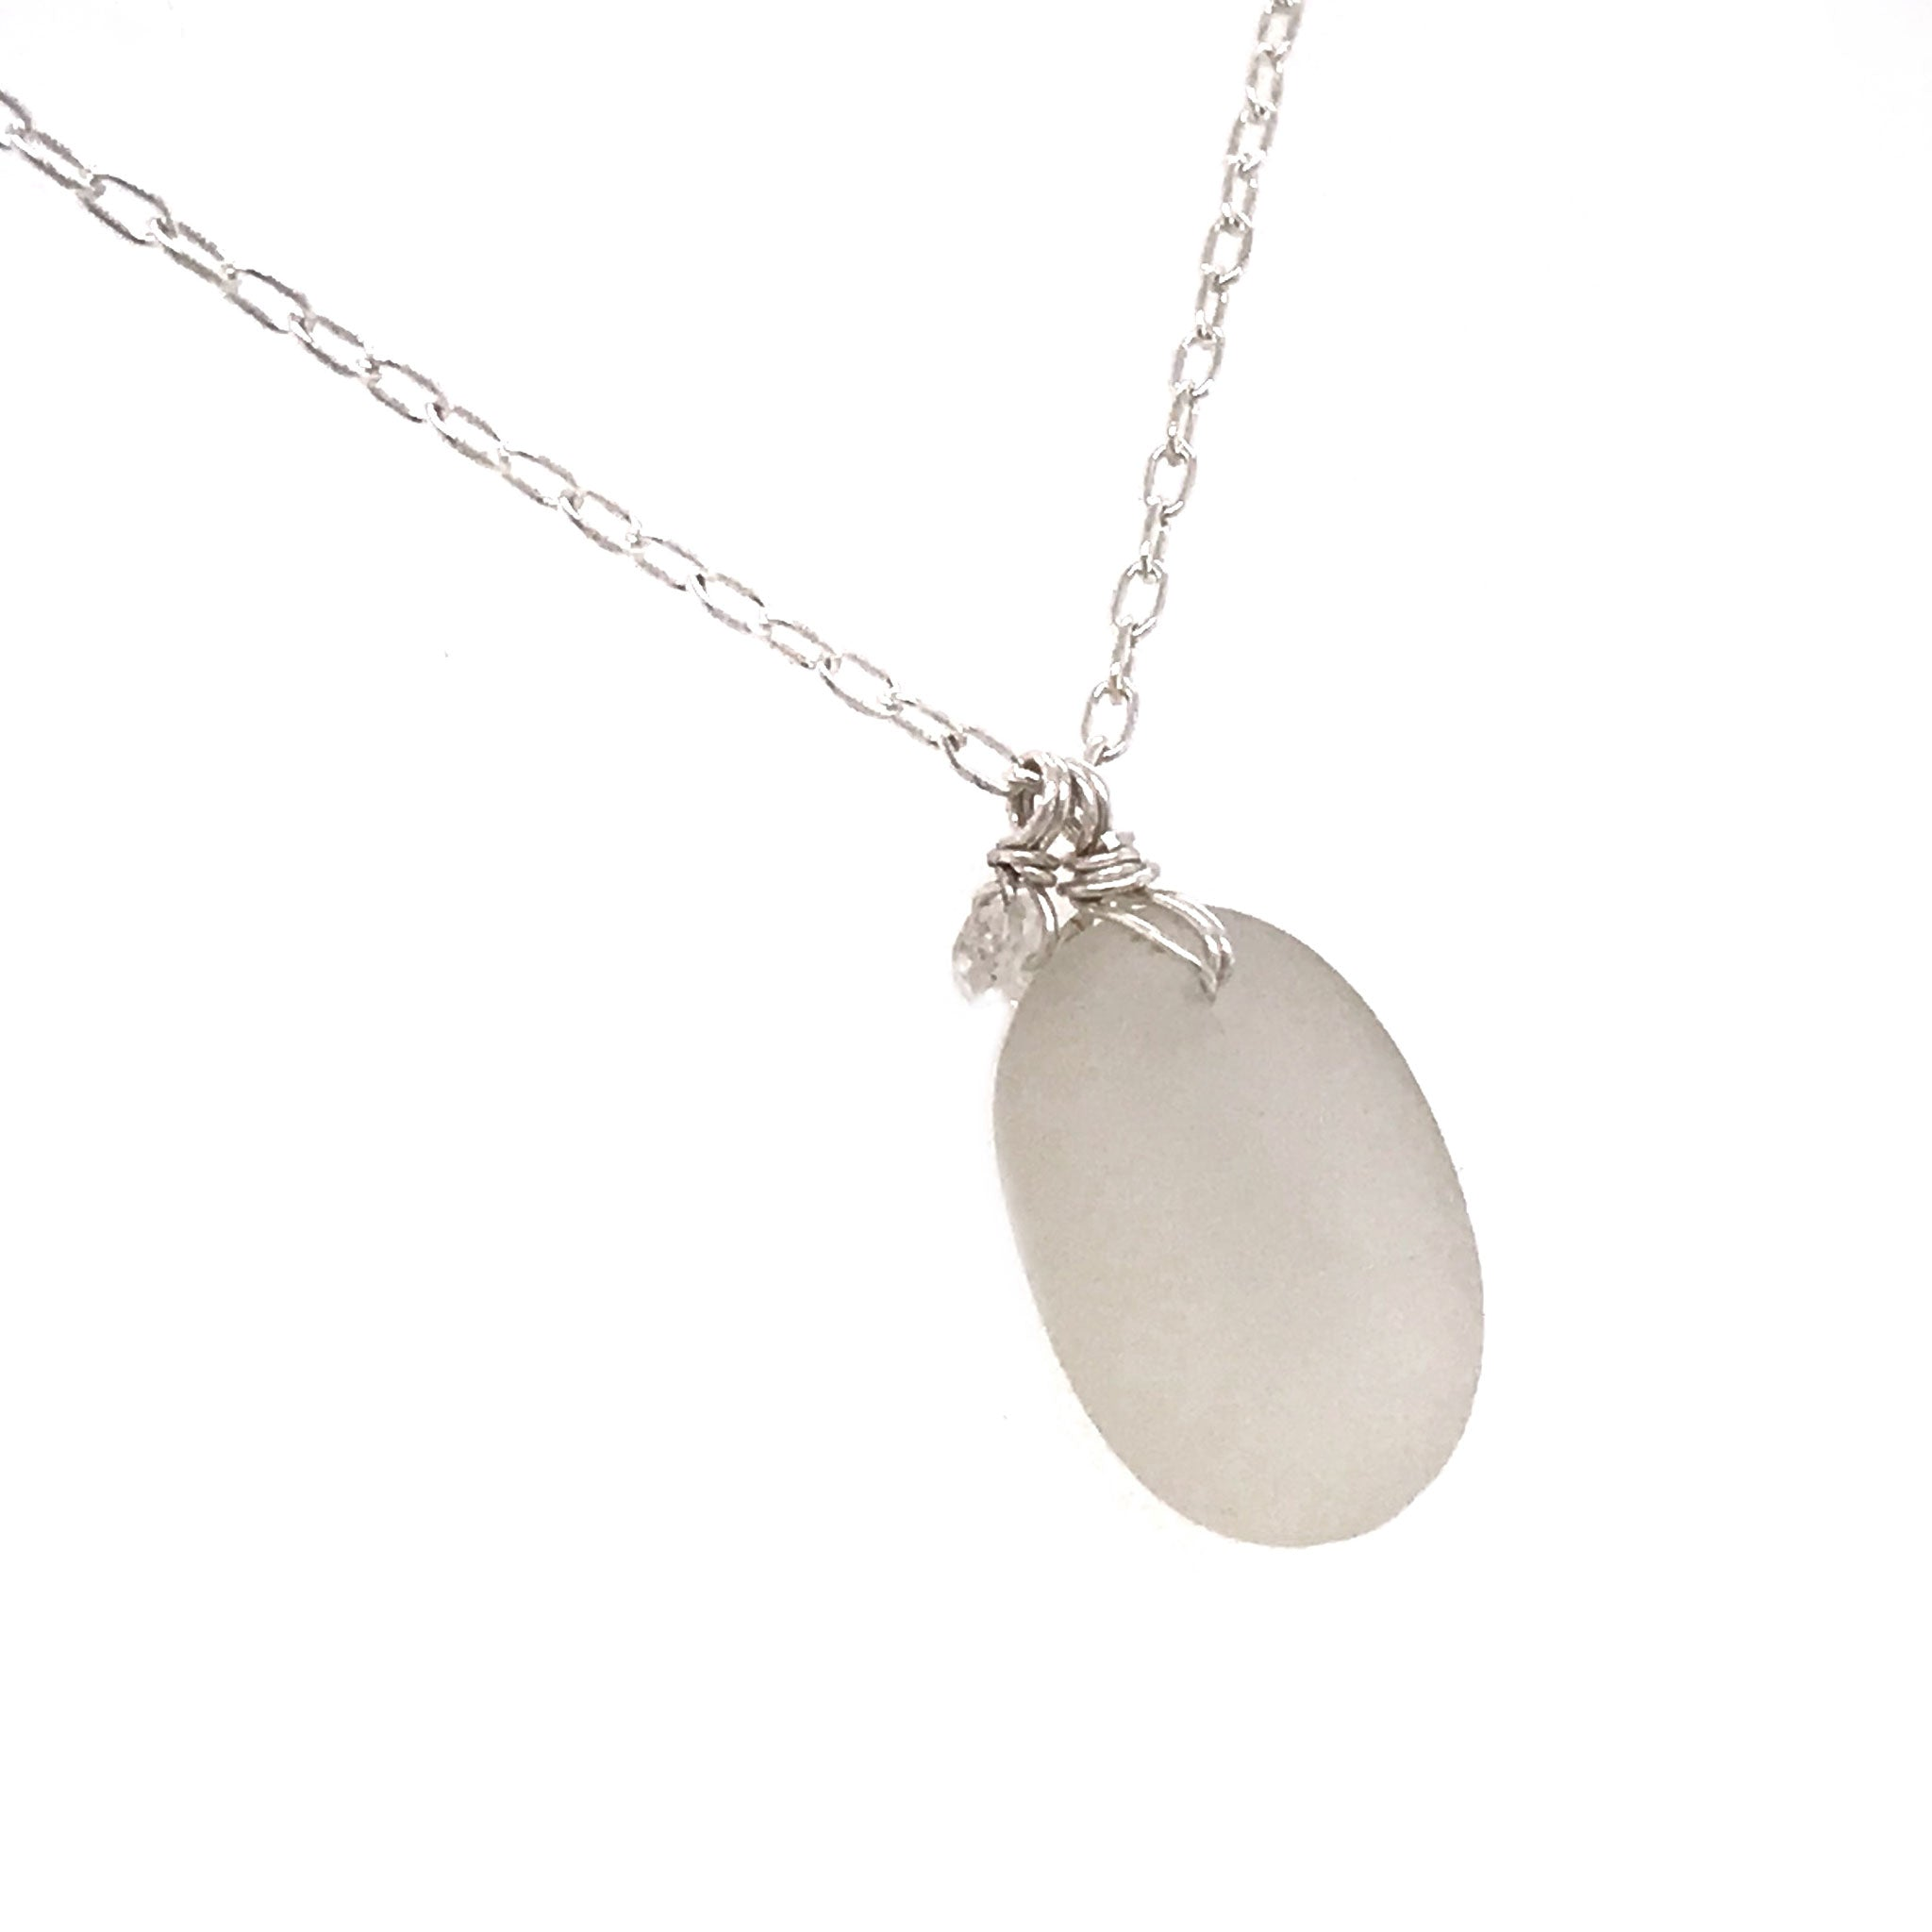 sterling silver necklace with clear seaglass and aquamarines Kriket Broadhurst jewellery